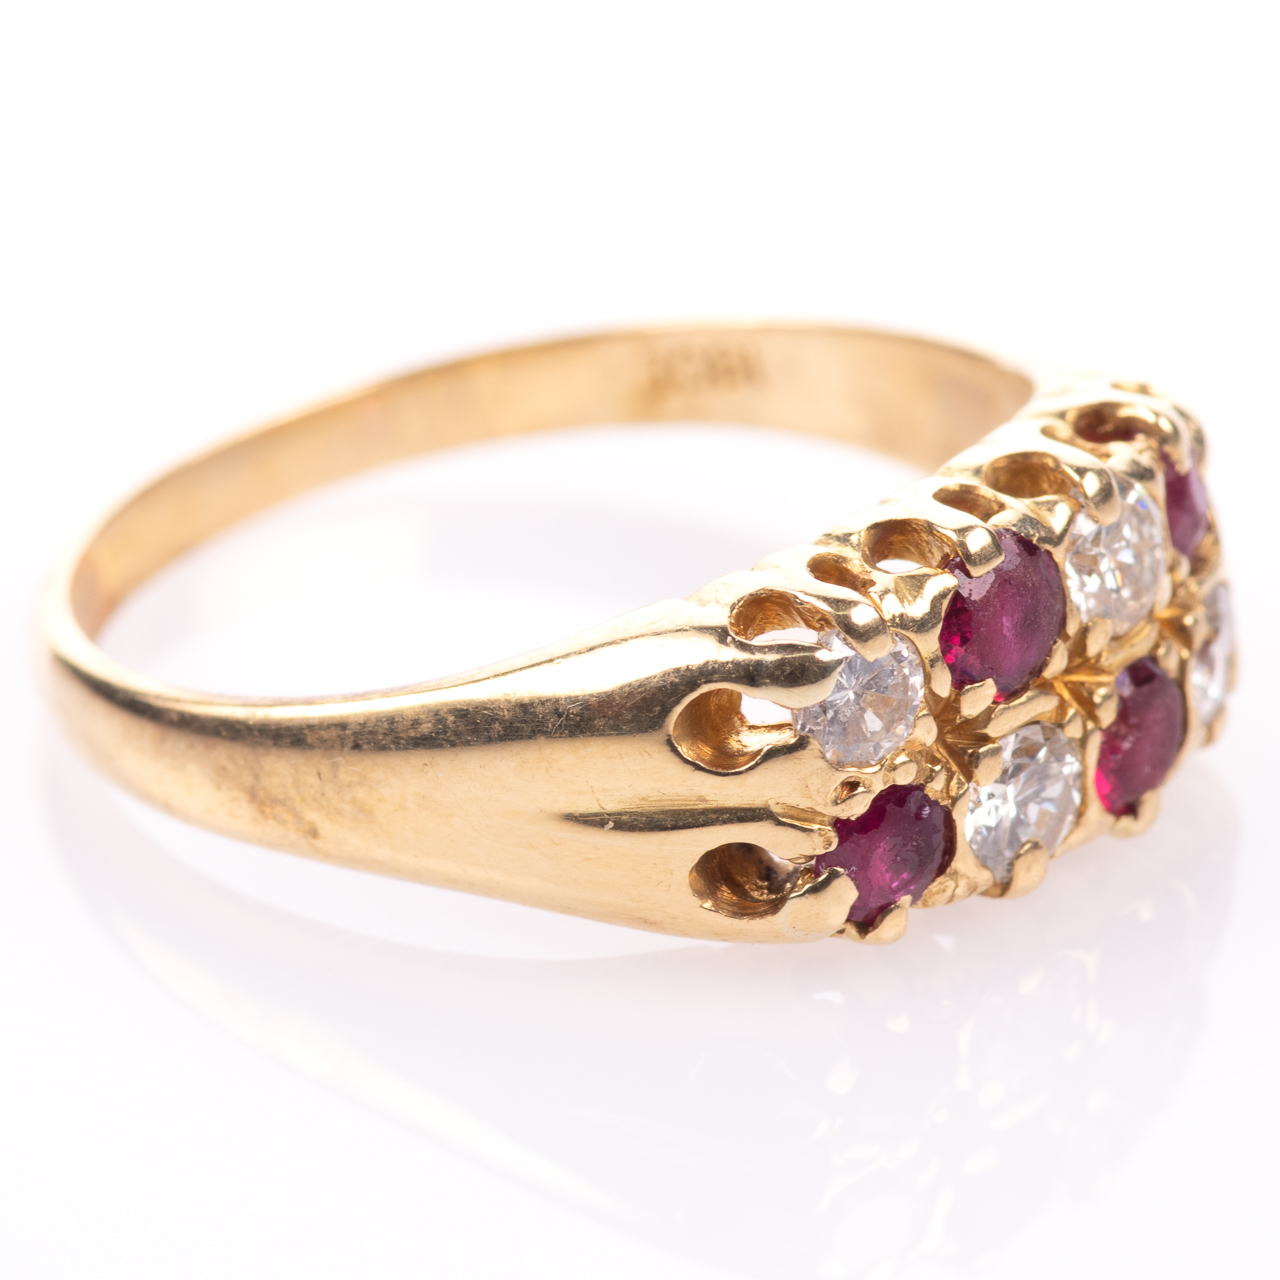 18ct Gold 0.60ct Ruby & 0.50ct Diamond Ring - Image 7 of 7